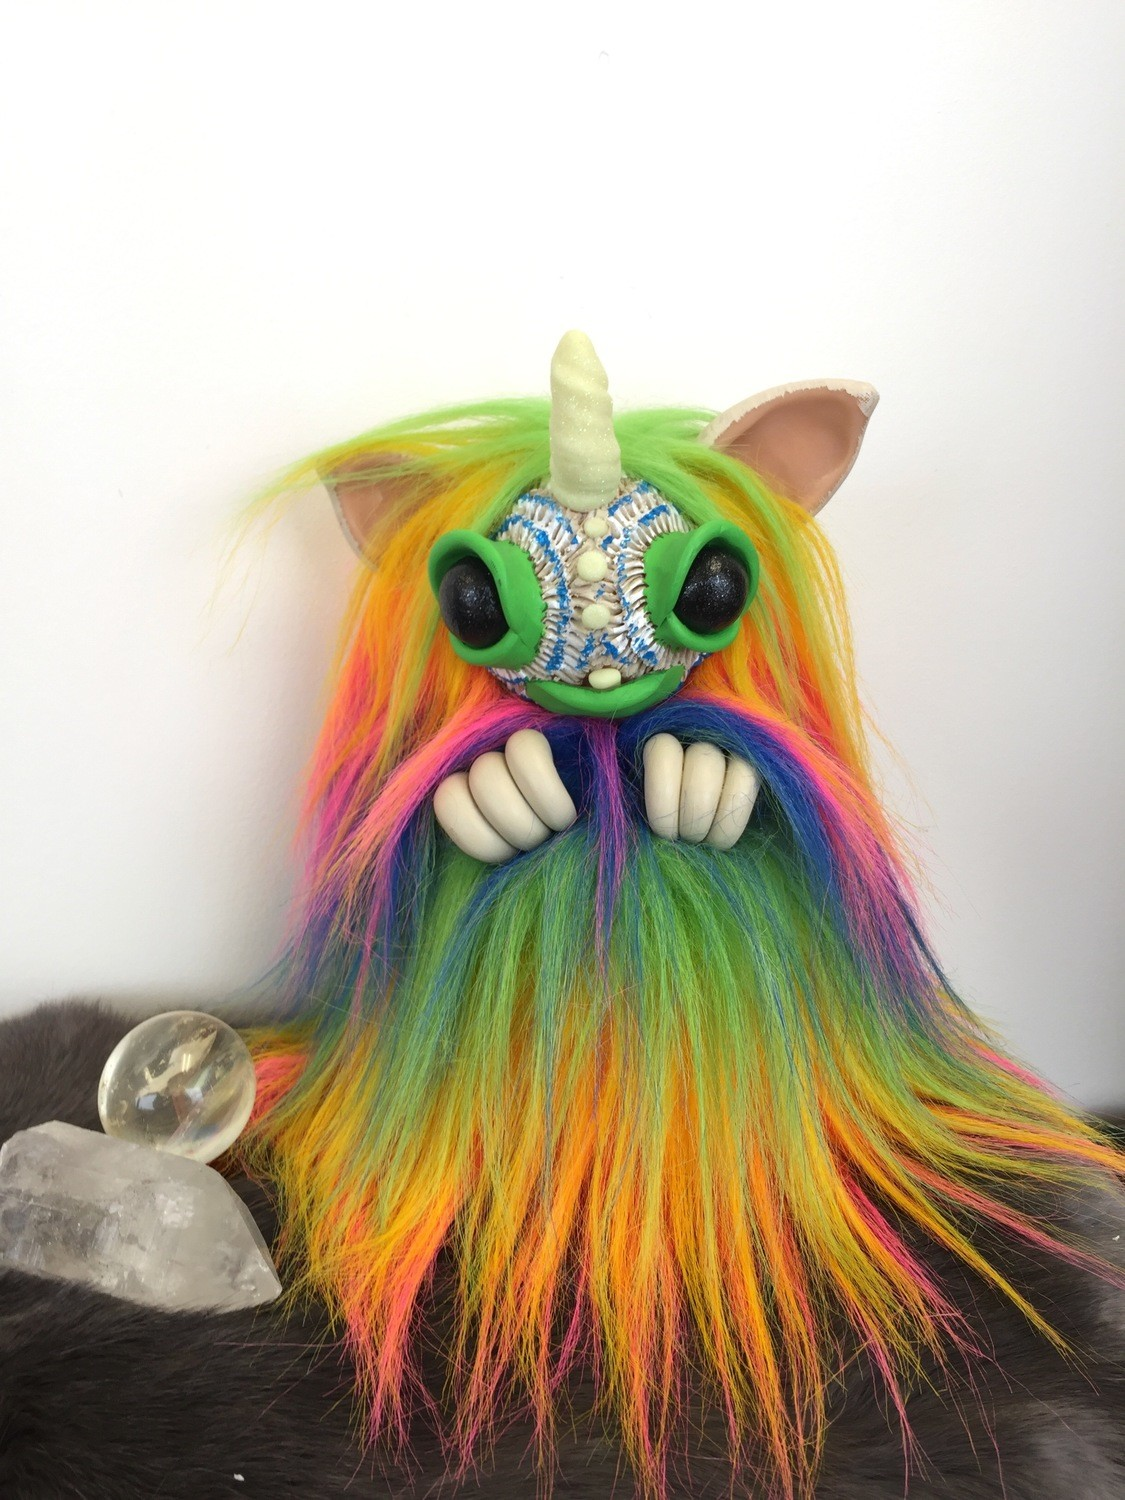 Rainbow Unicorn Haggling 4